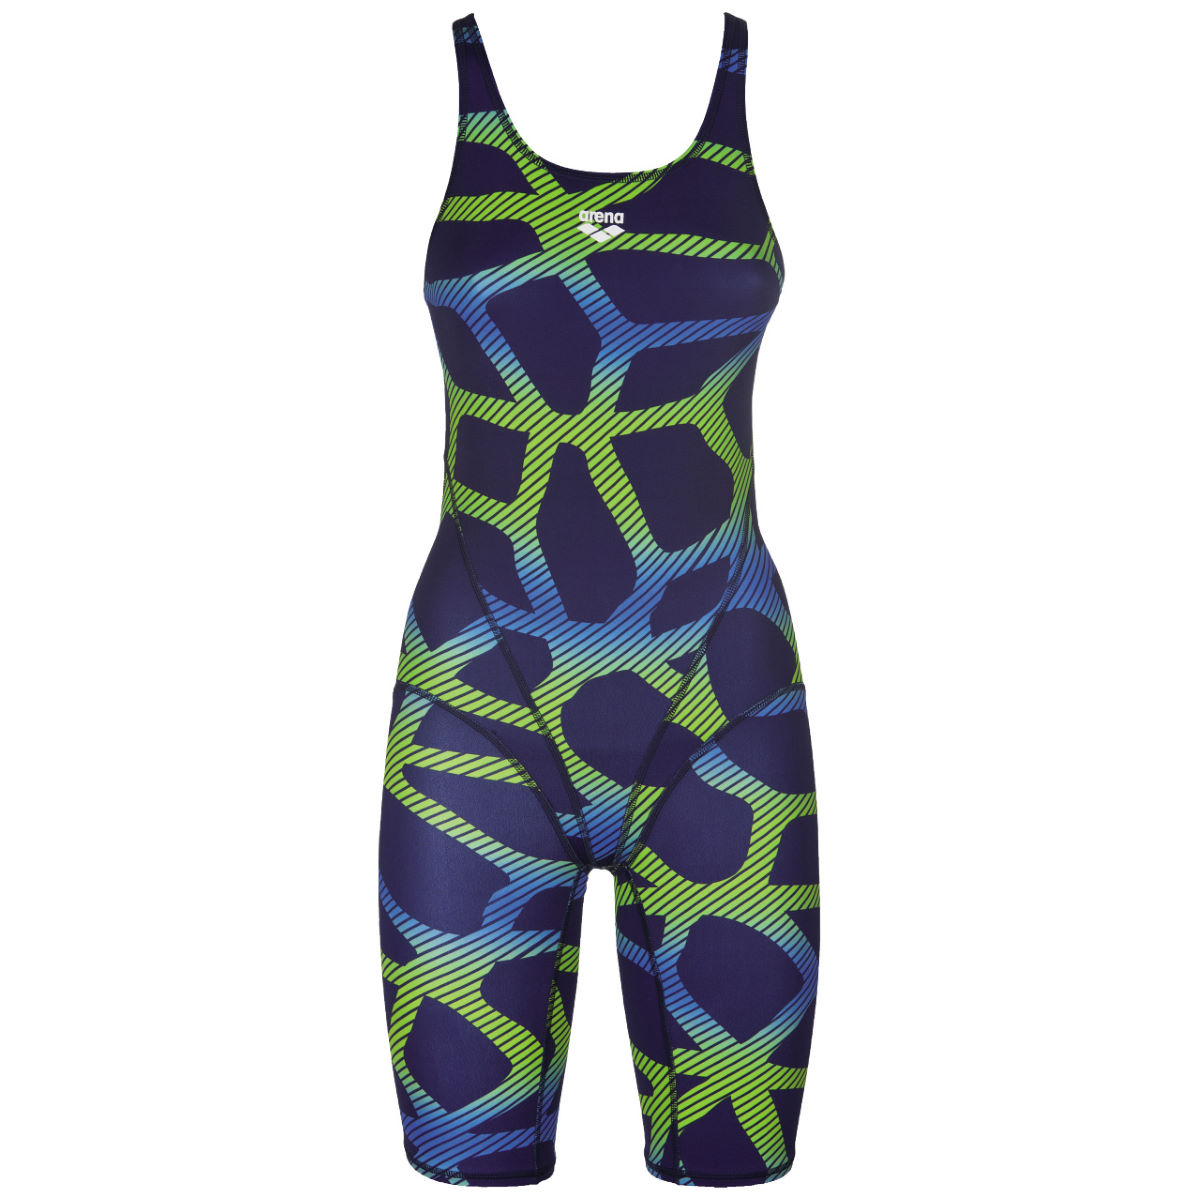 Maillot de bain Femme Arena Spider FBSLO (jambes longues) - 34''